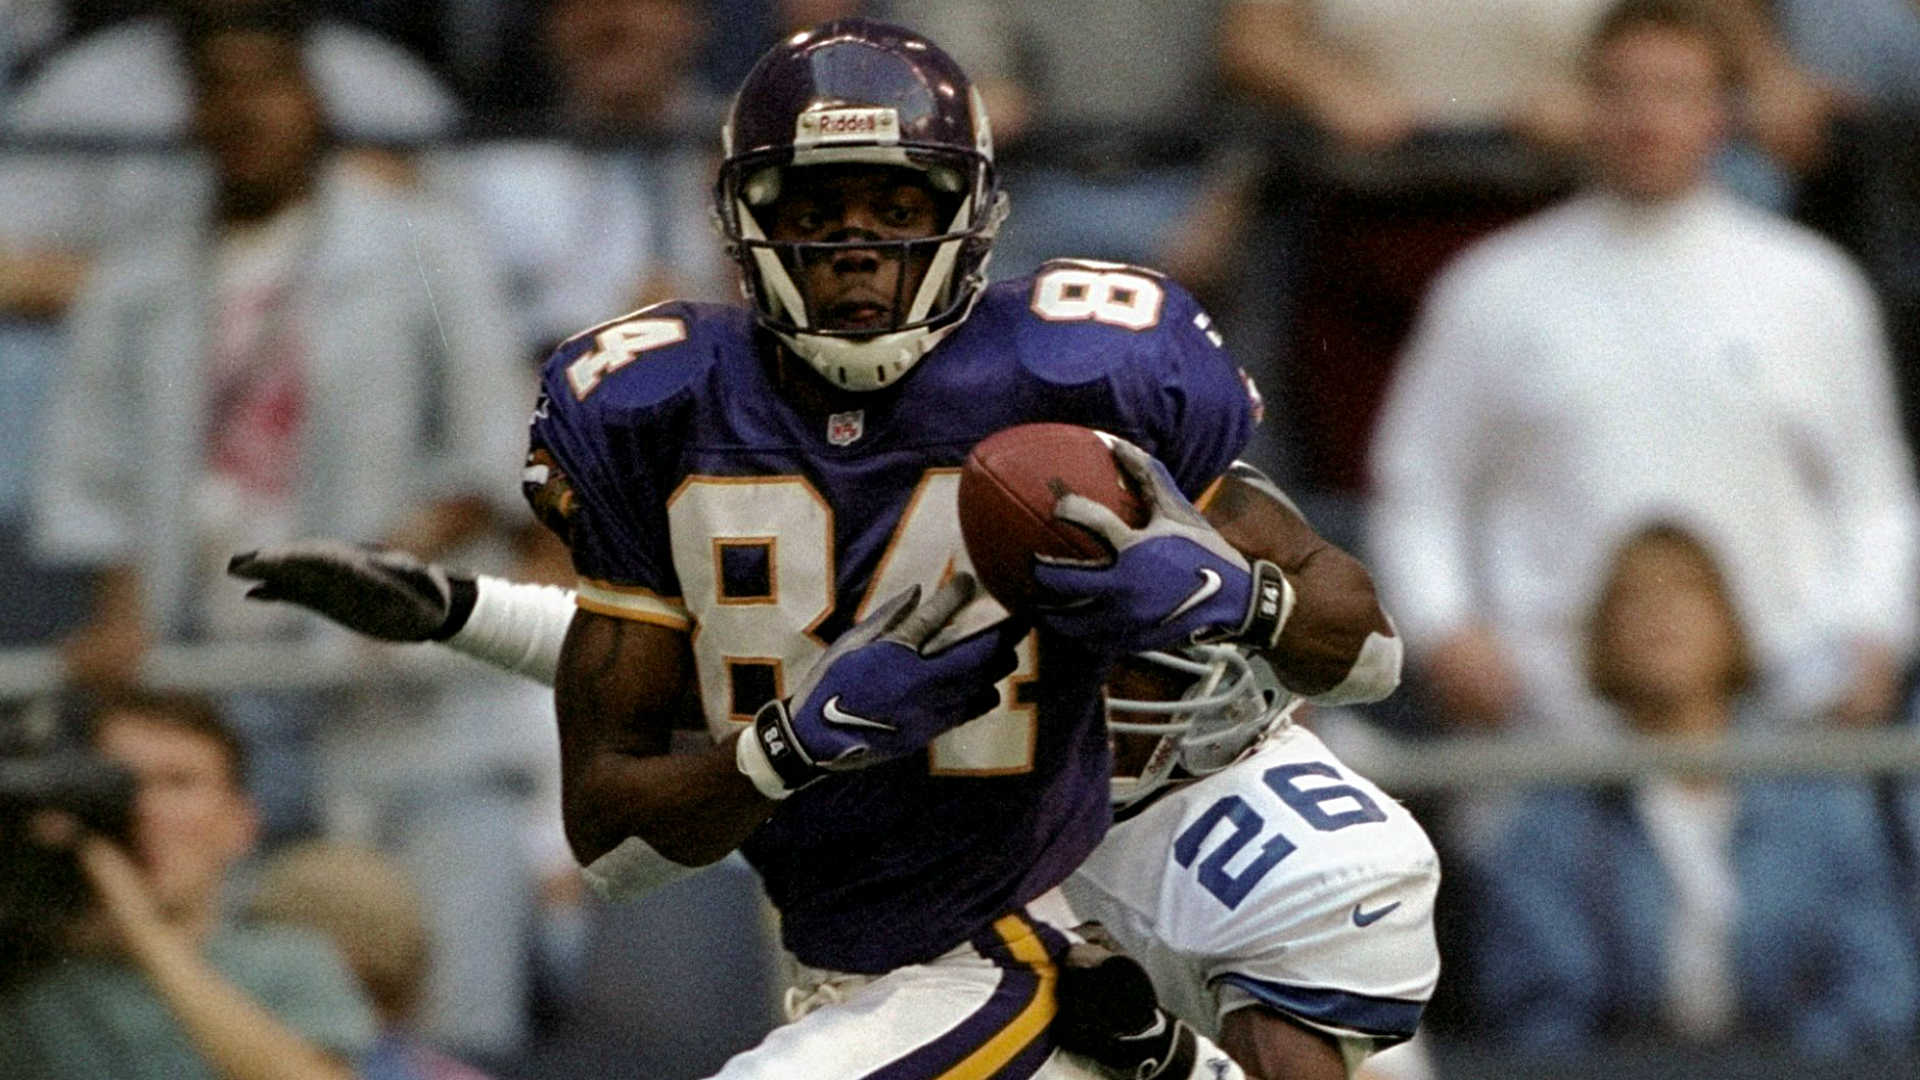 Randy-moss-vikings-112117-getty-ftr_1pueeiqc0tdsf1mhnhcye109g0